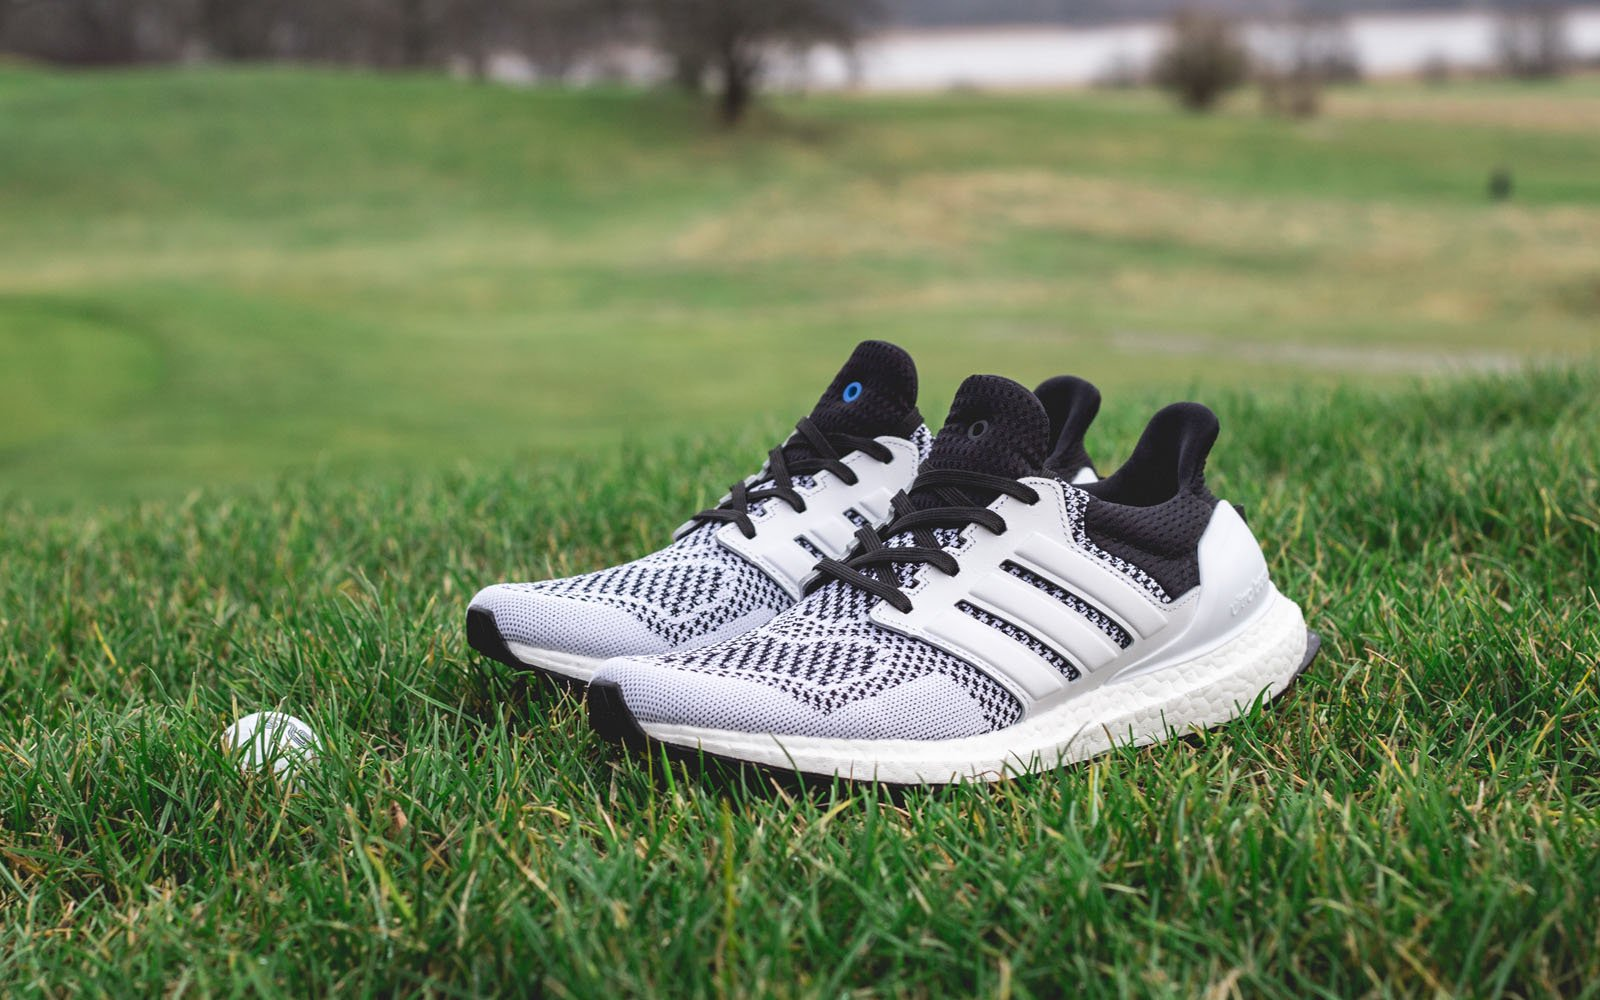 info for 5baf5 fa8b8 adidas UltraBOOST - Af5756 - Sneakersnstuff | sneakers ...